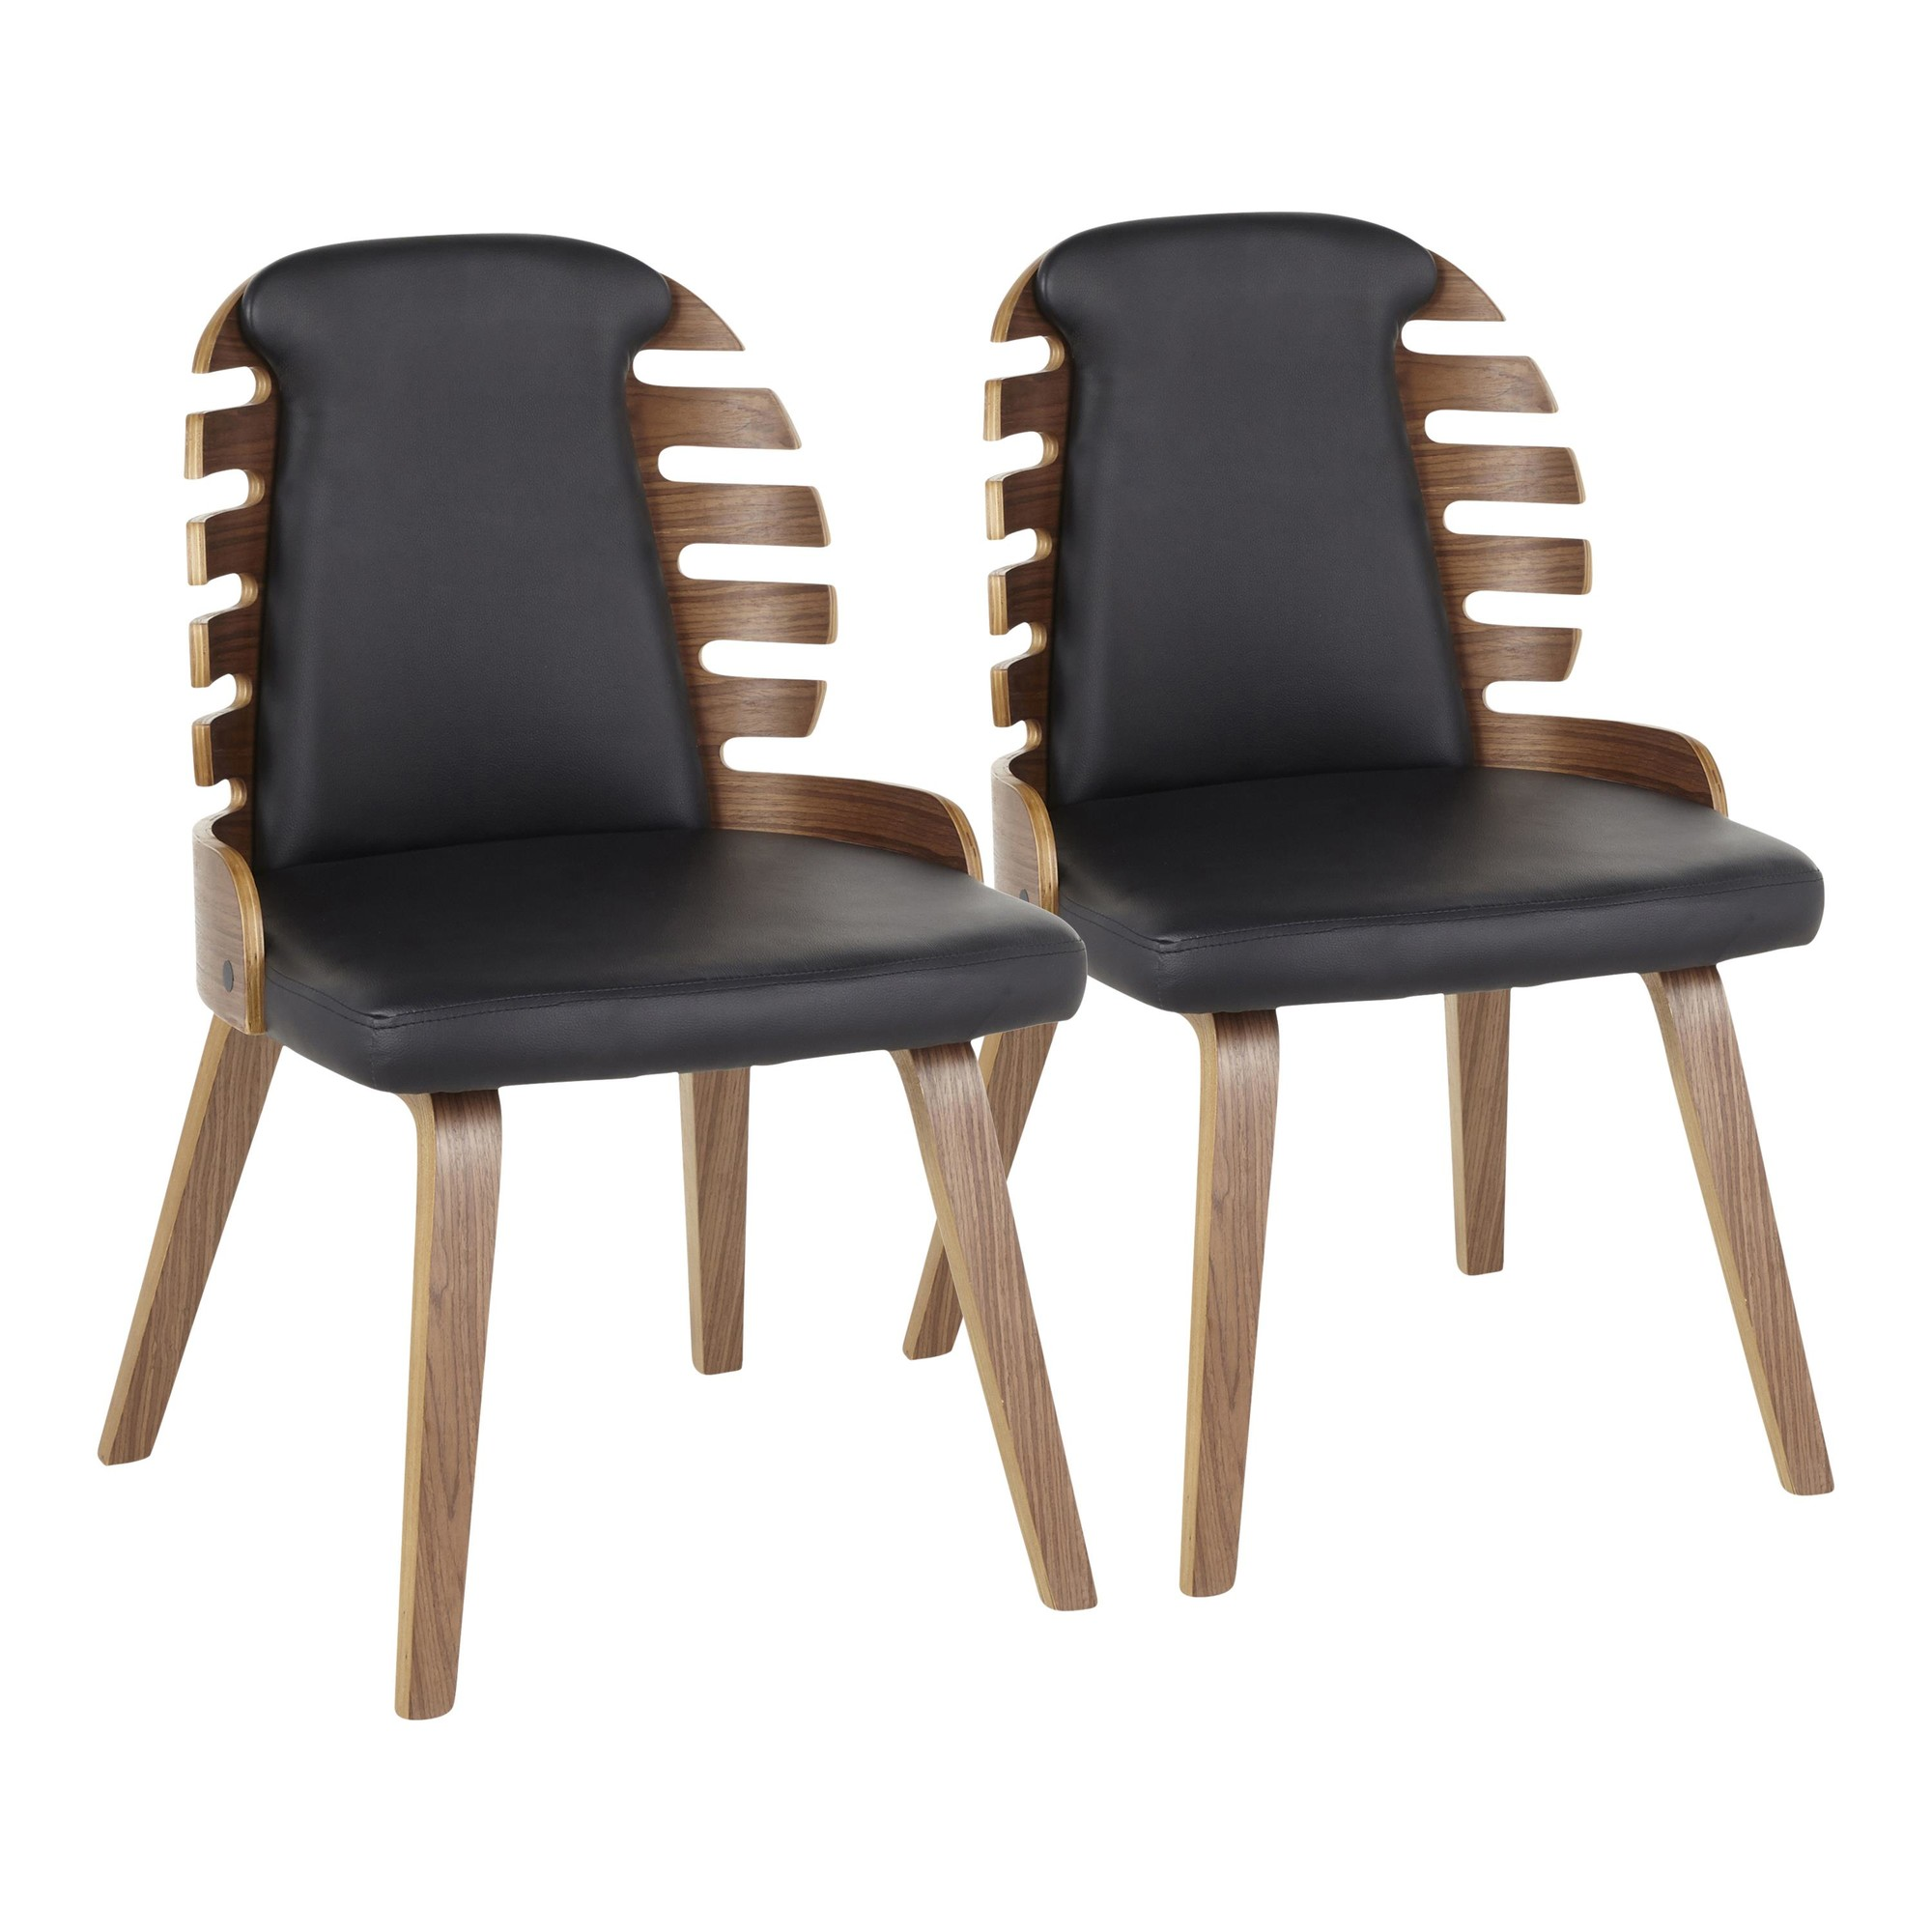 Image of: Palm Mid Century Modern Dining Chair In Walnut Wood Black Faux Leather Set Of 2 Lumisource Dc Palm Wlbk2